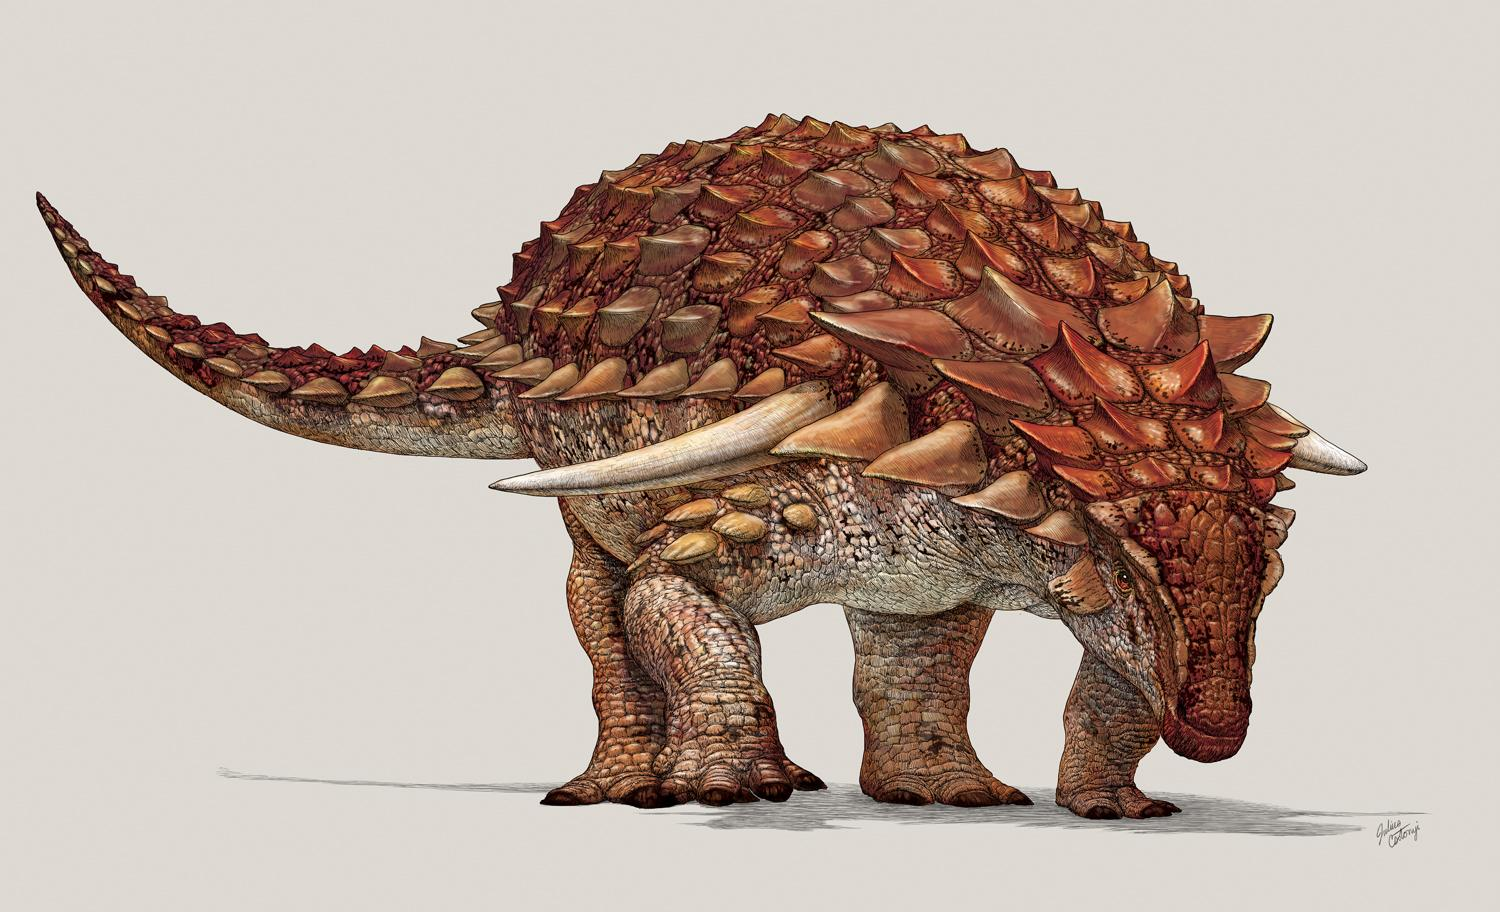 Fossil Reveals Newly Described Dinosaur Species Used Camouflage